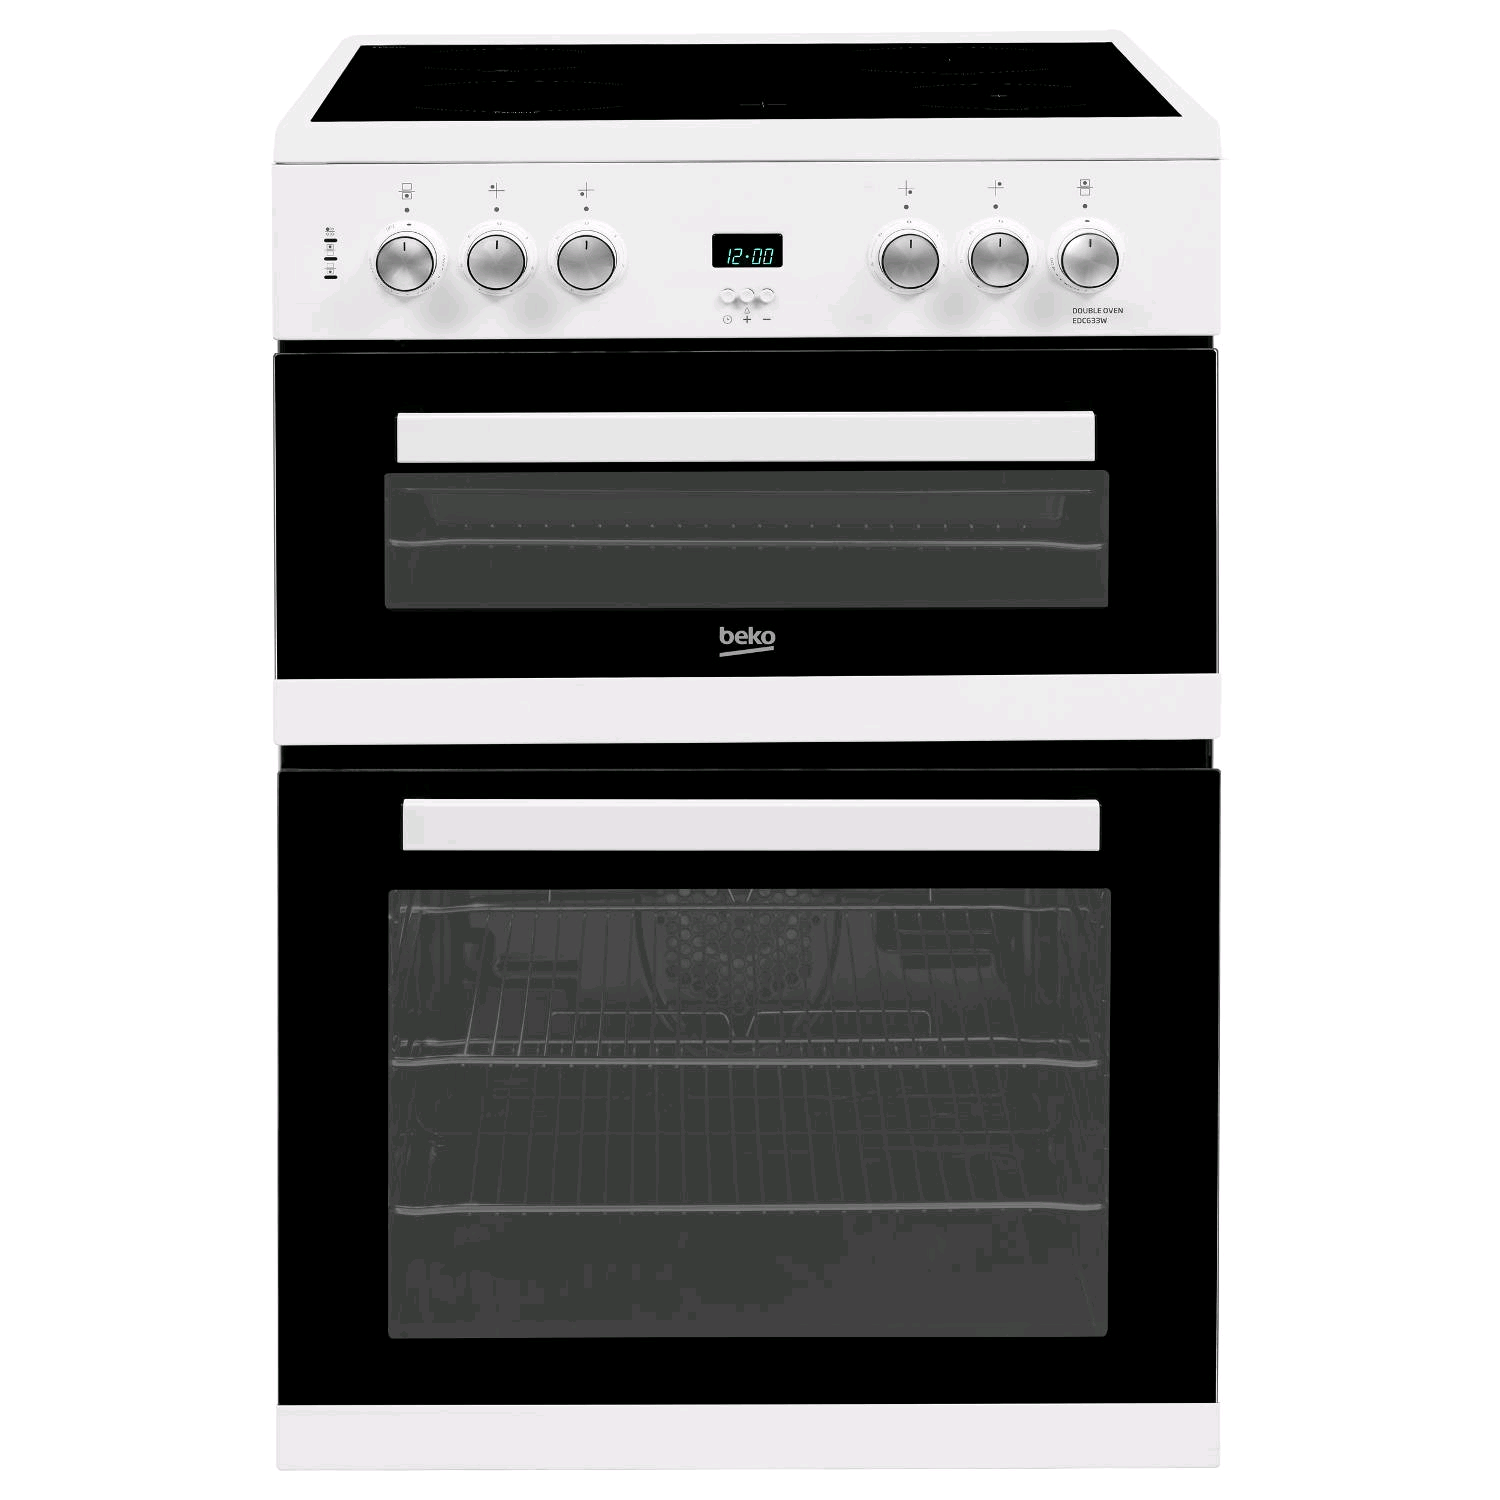 Beko Double Oven Electric Cooker White Ceramic Hob 60cm